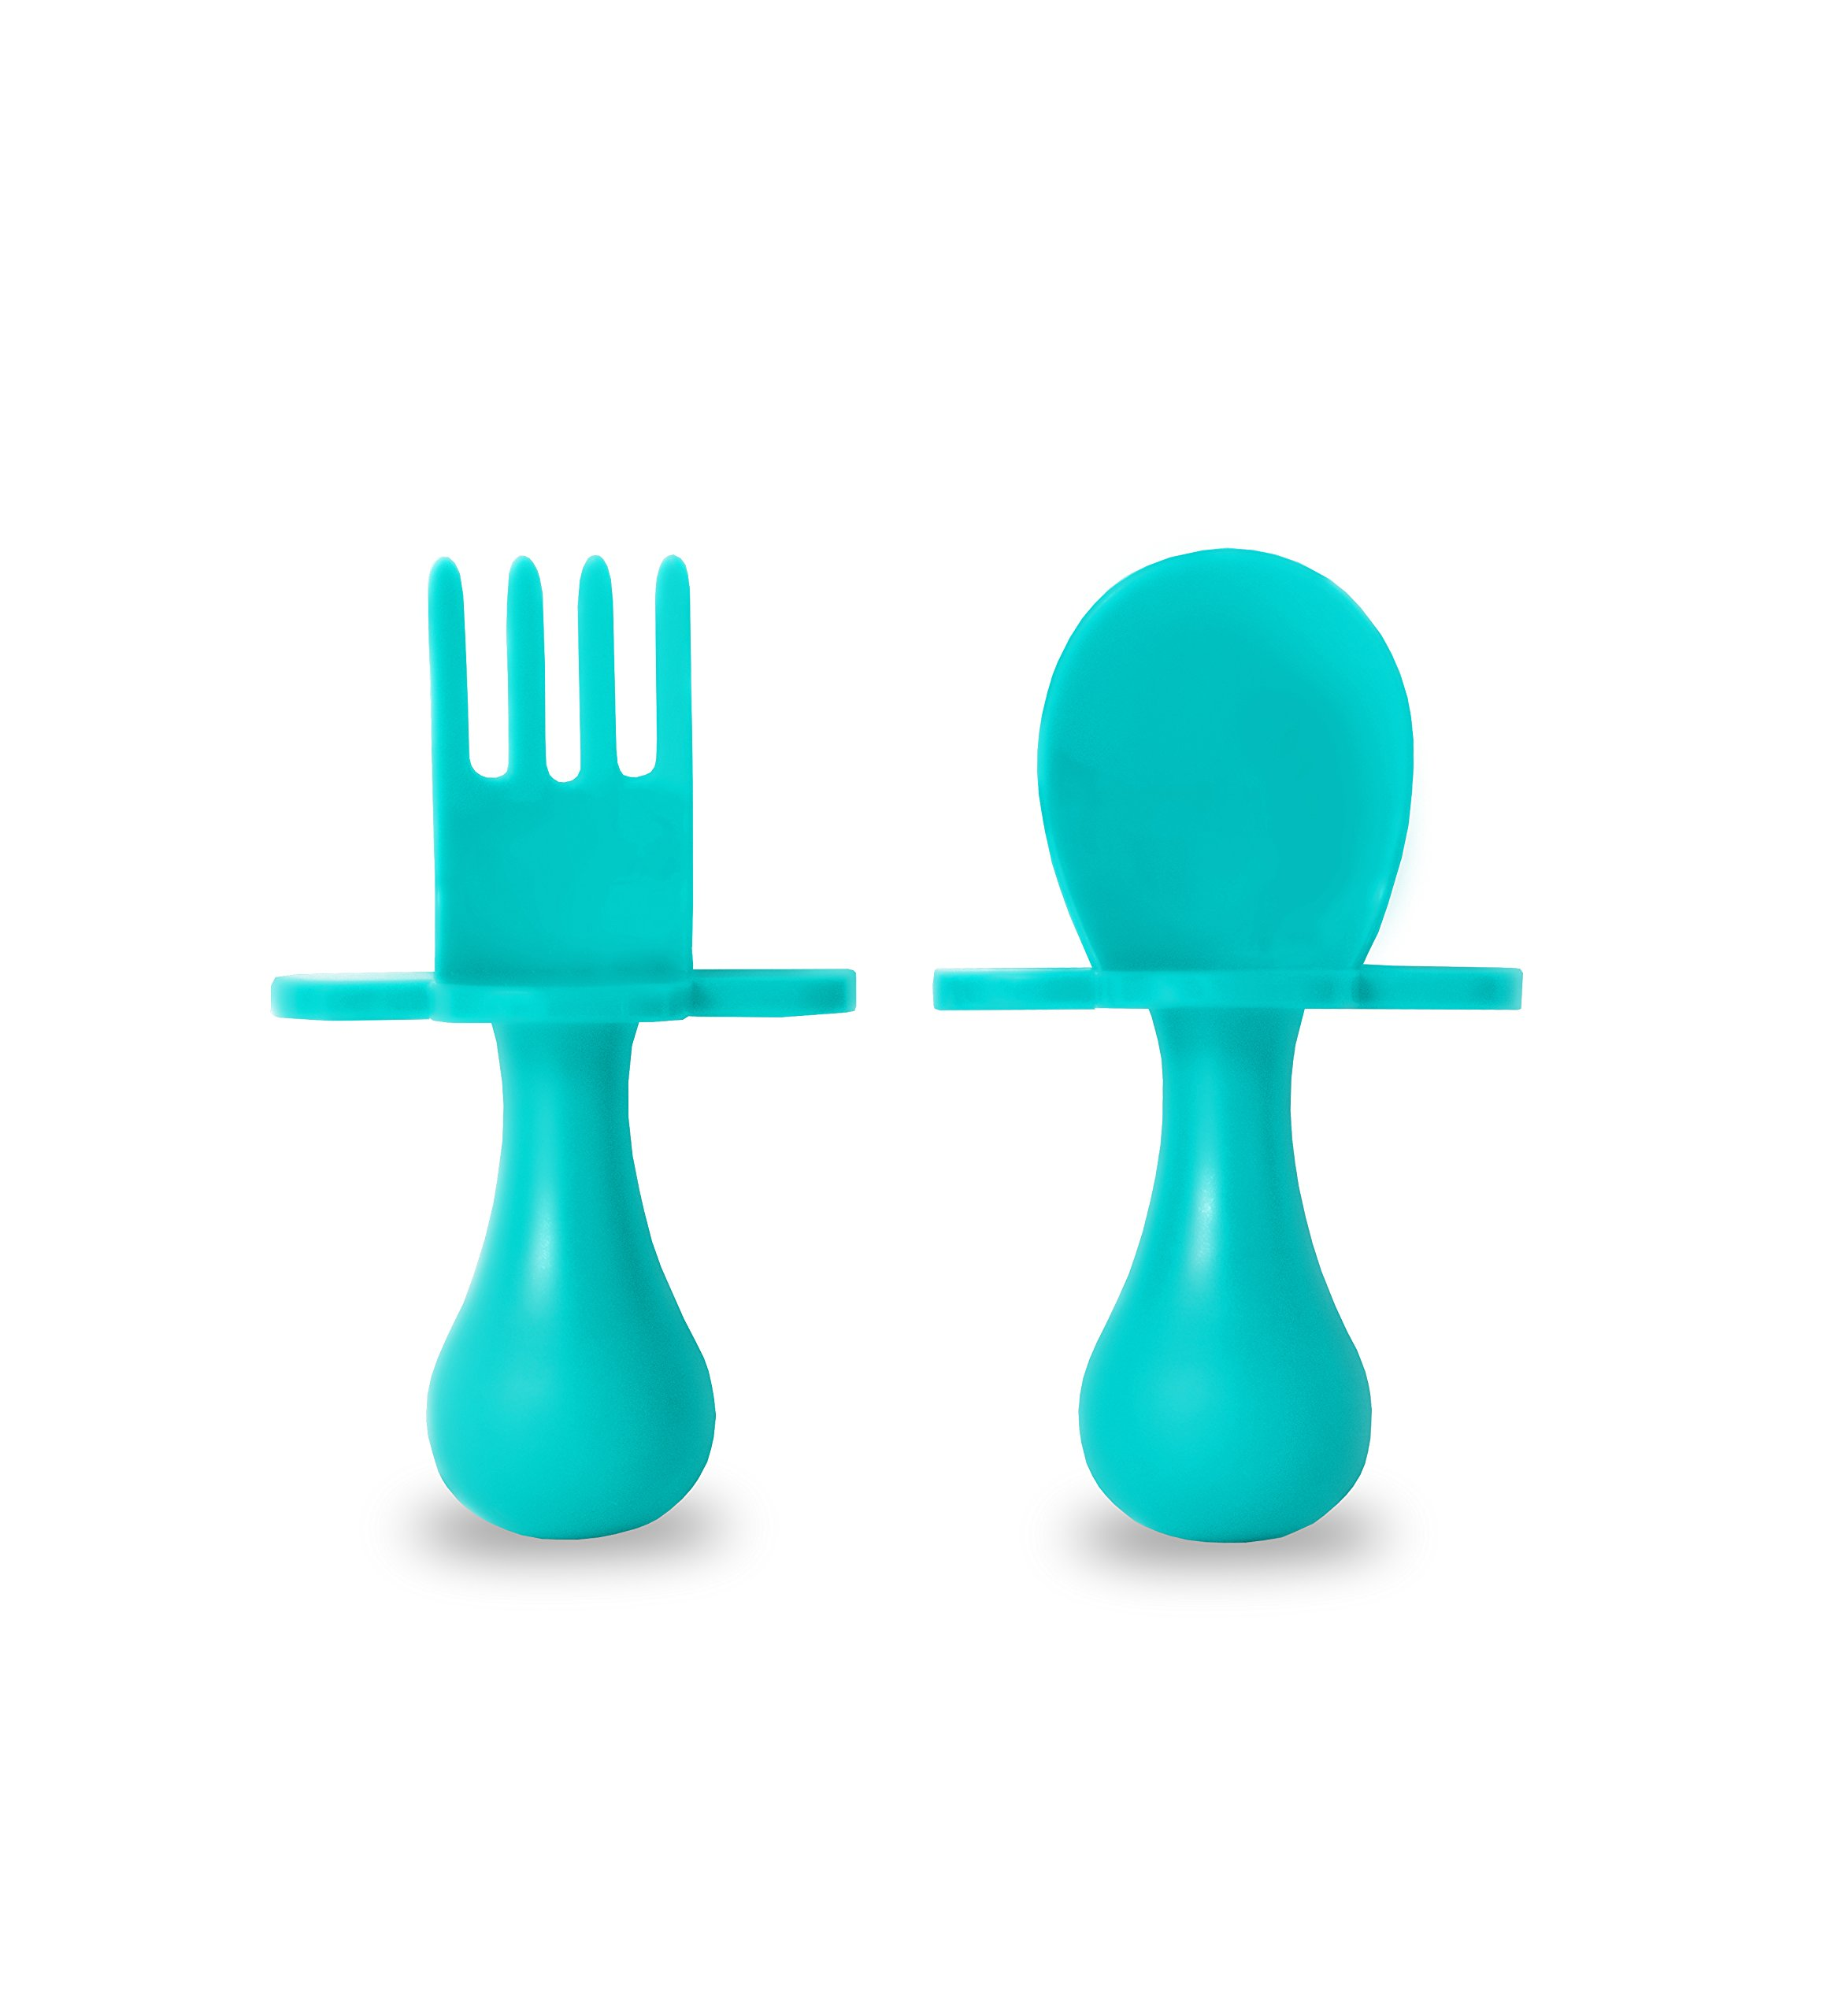 grabease First Self Feeding Utensil Set of Spoon and Fork for Toddlers (teal) BPA free. To Go pouch